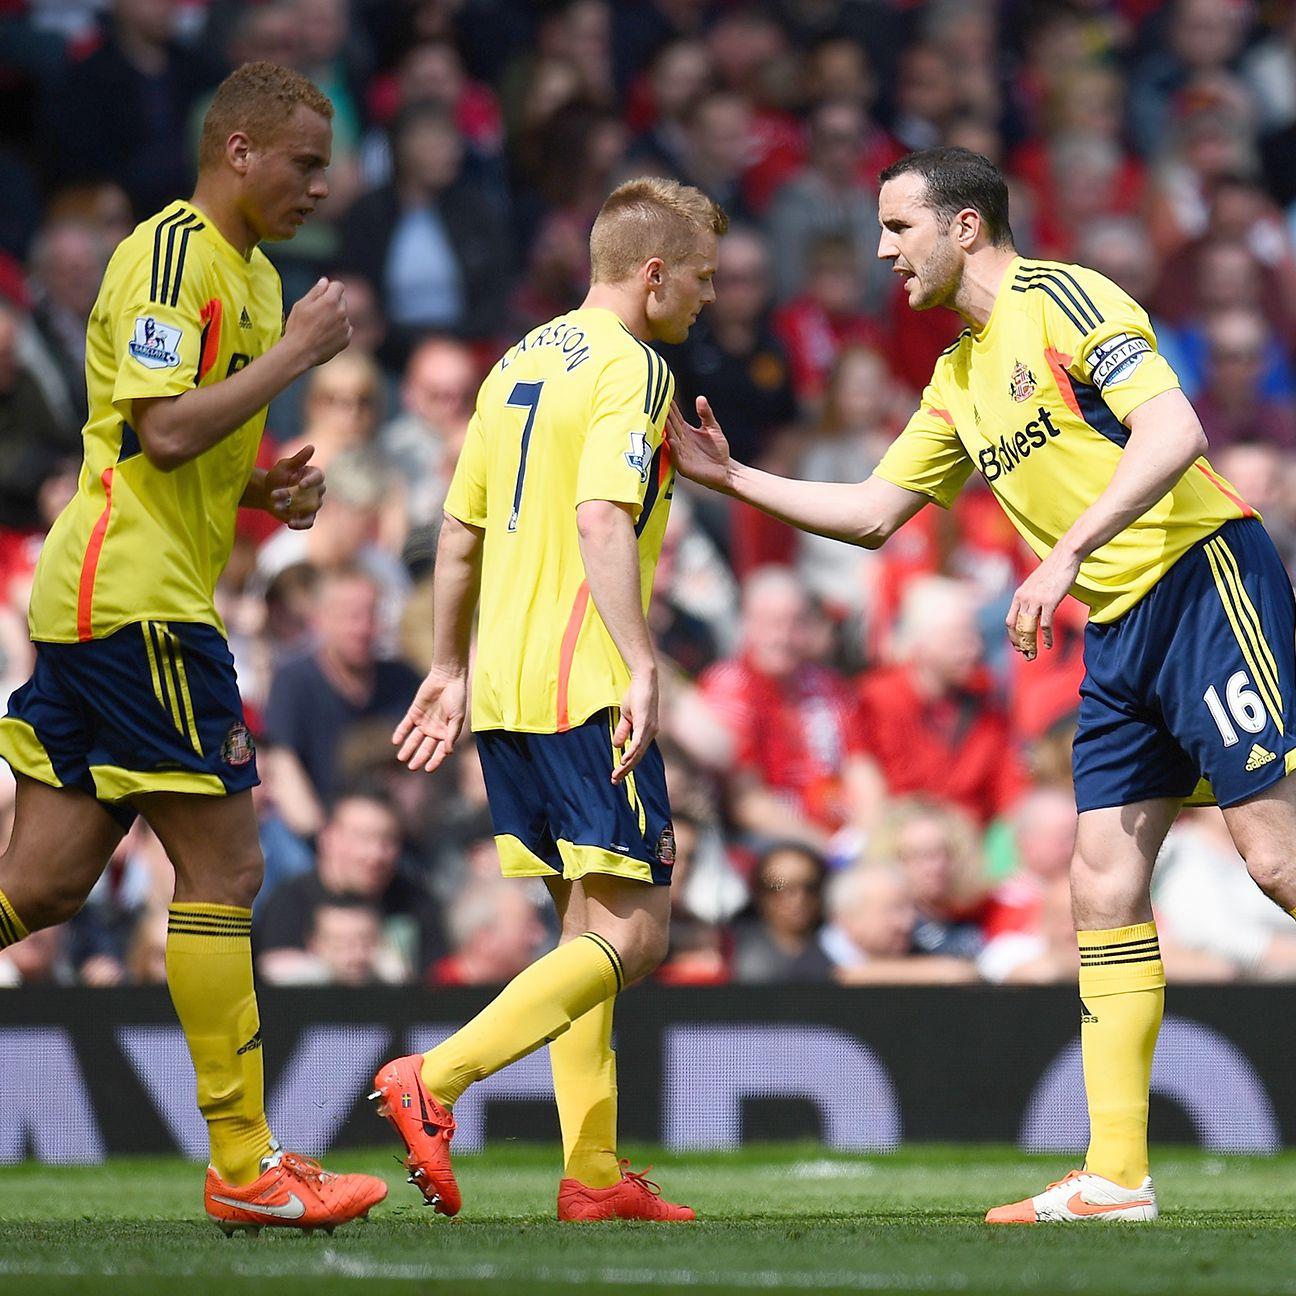 Seb Larsson was the hero when Sunderland stunned Manchester United at Old Trafford in 2013-14.